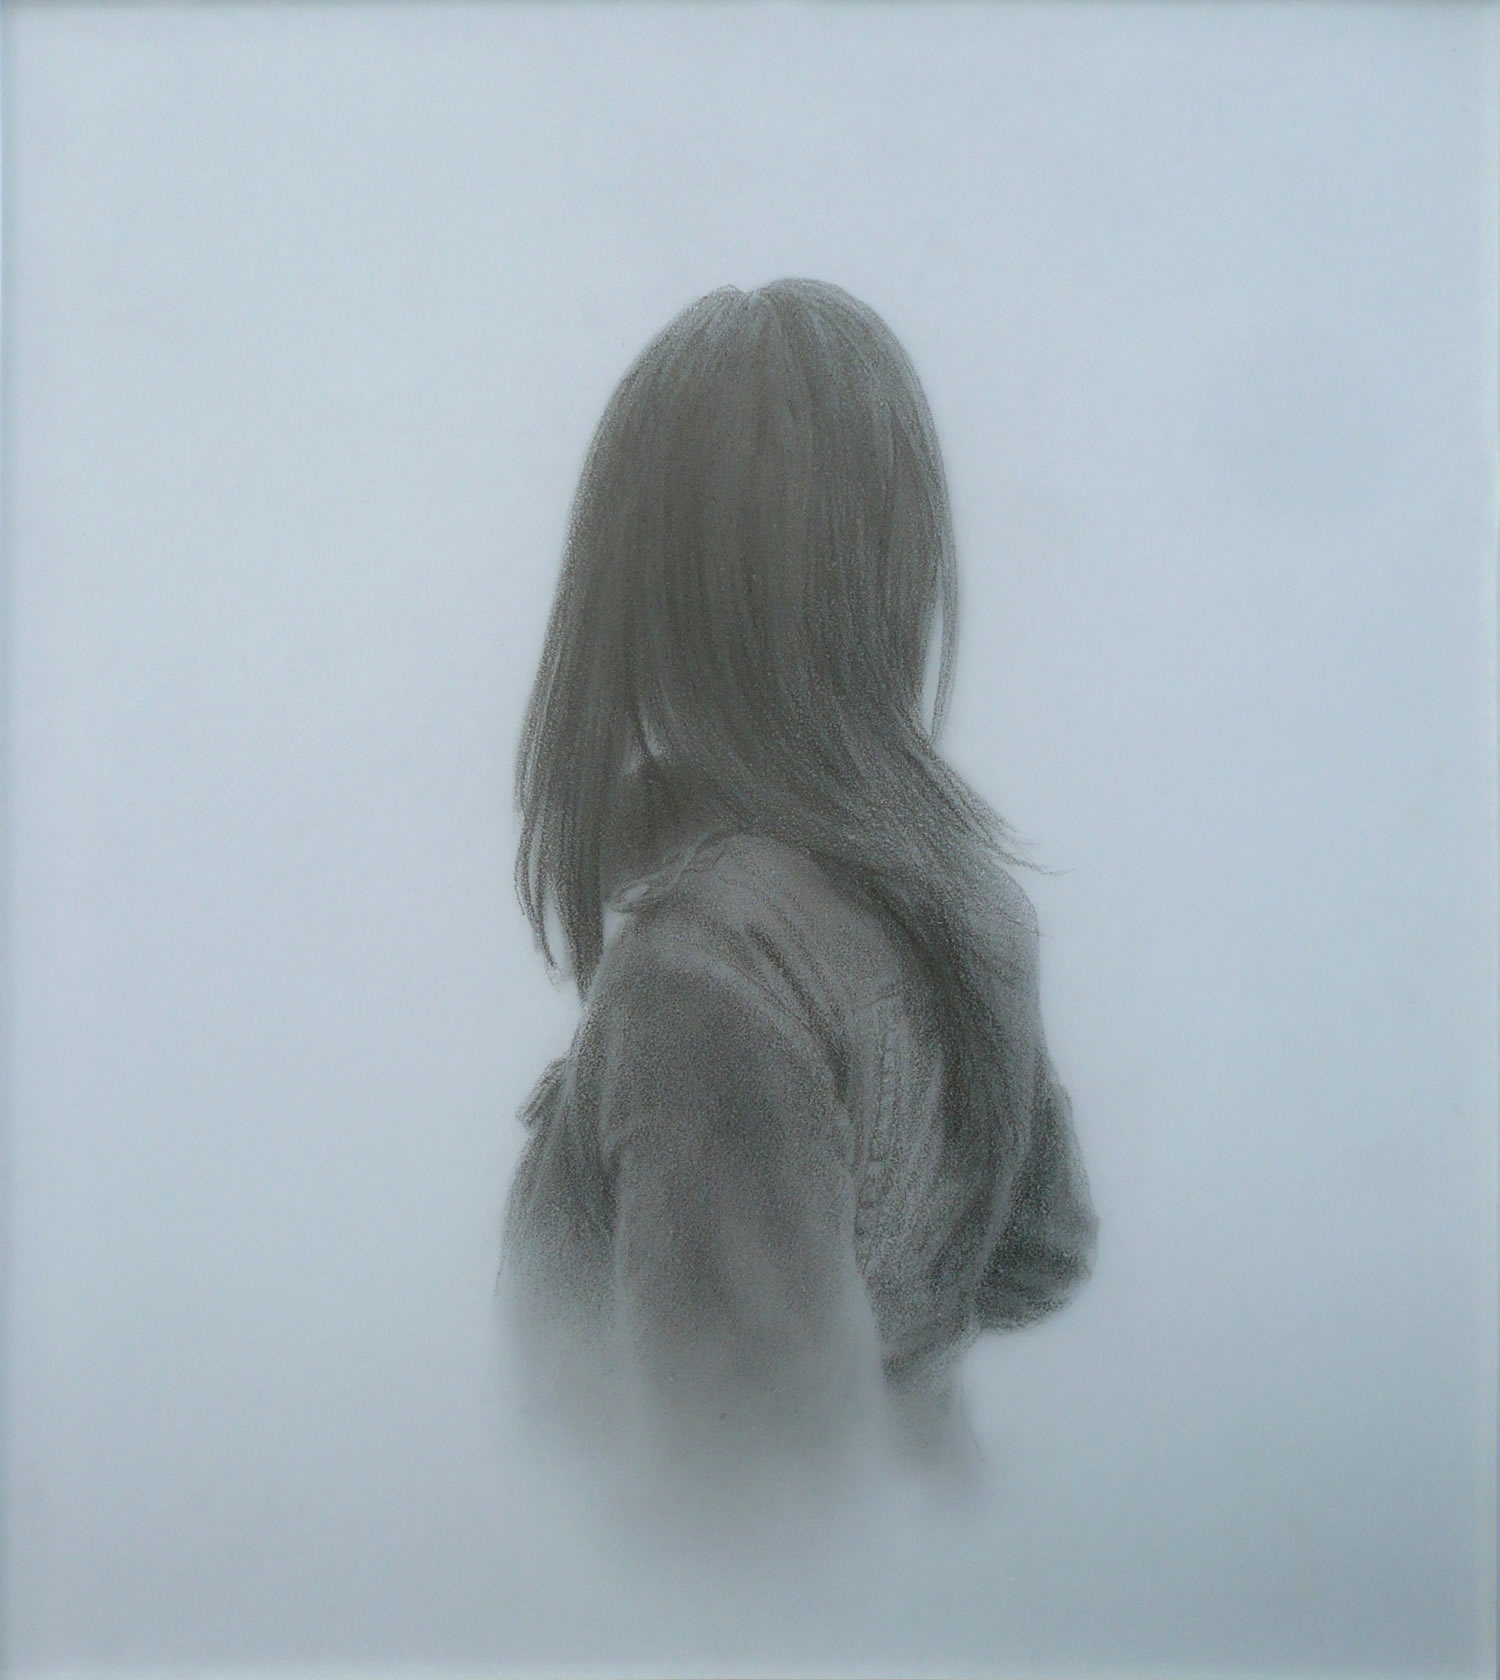 woman with long hair has her back turned to us. drawing by hernan marin